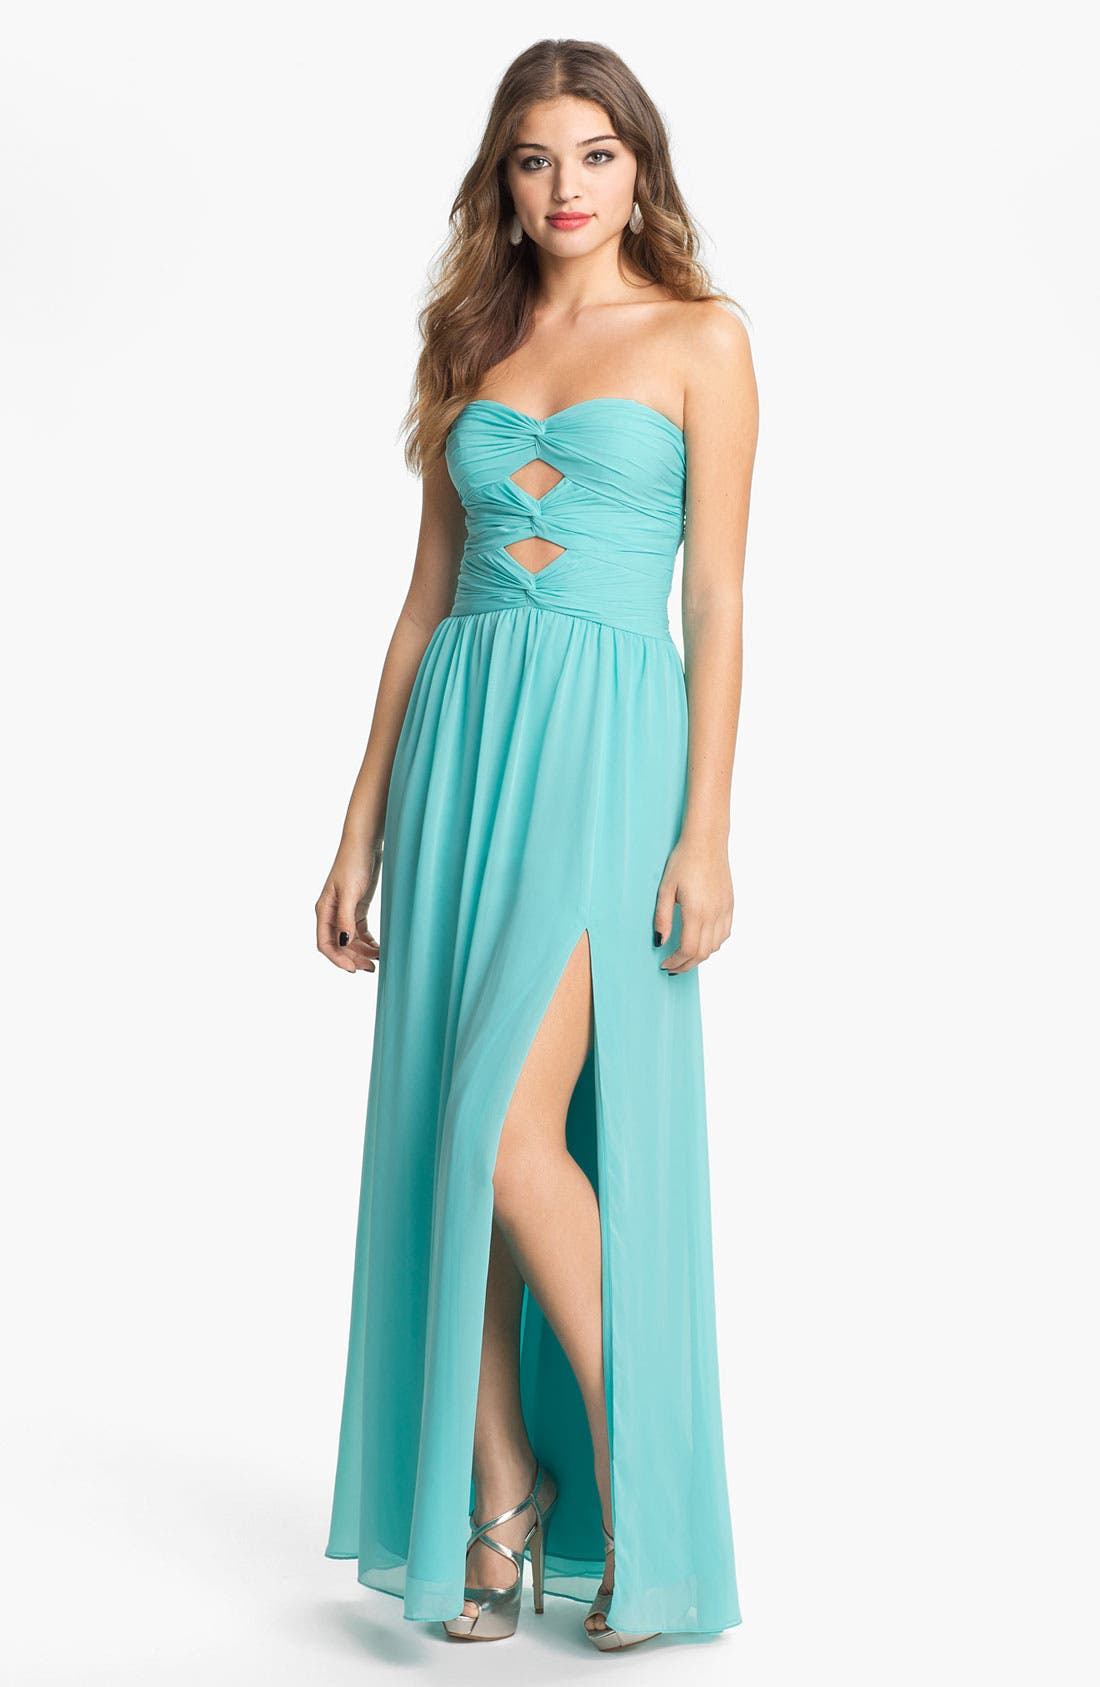 Alternate Image 1 Selected - Hailey by Adrianna Papell Cutout Detail Twist Mesh Gown